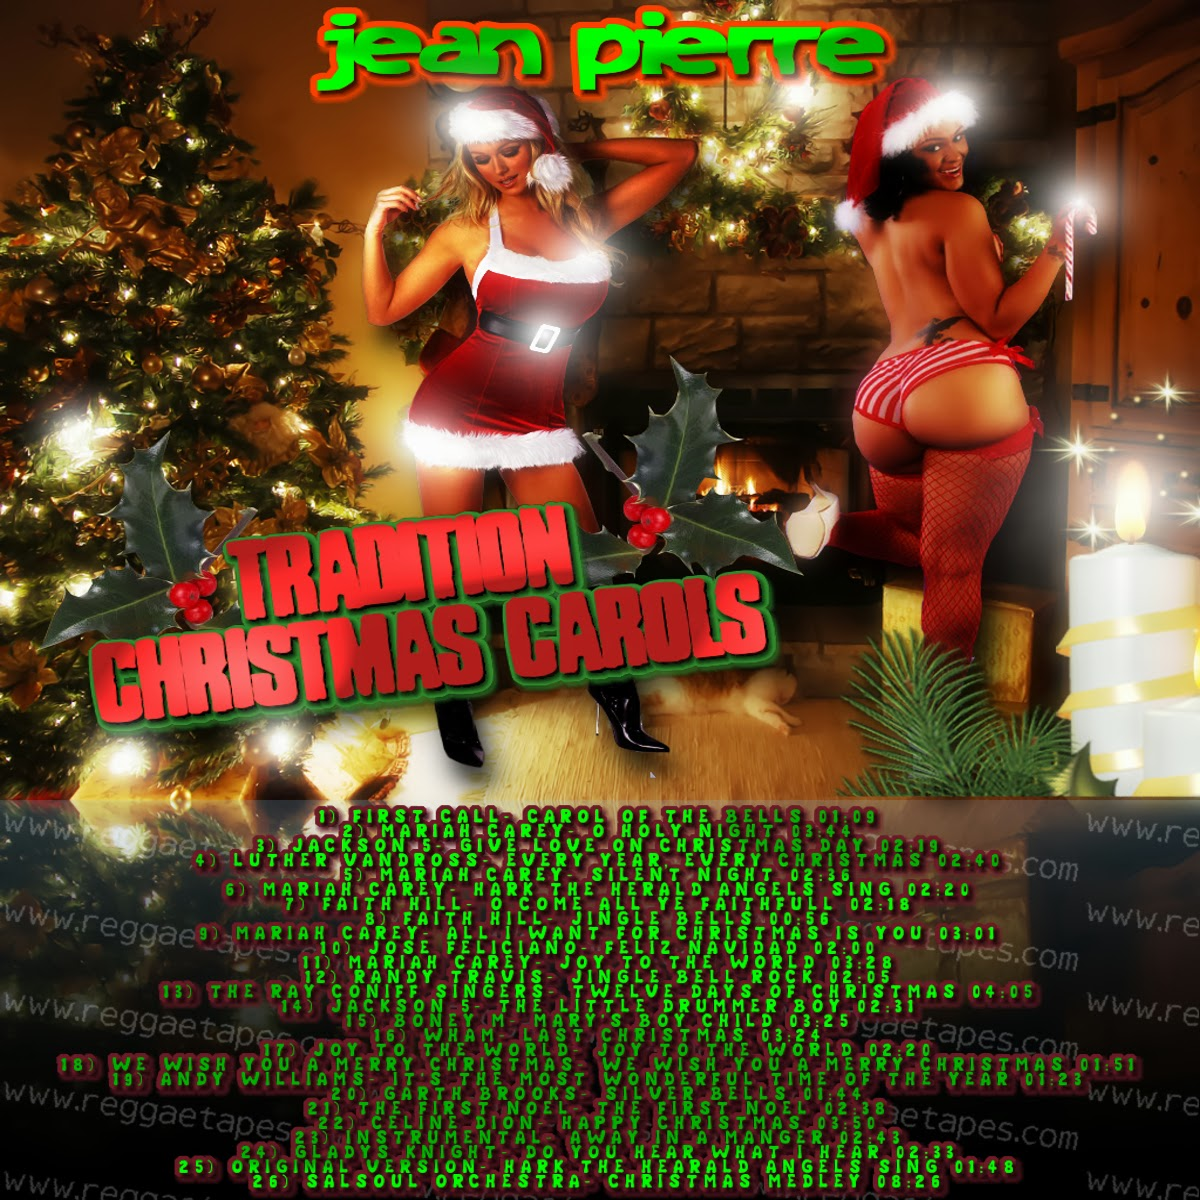 jean pierre tradition christmas carols mixtapes4yuh. Black Bedroom Furniture Sets. Home Design Ideas